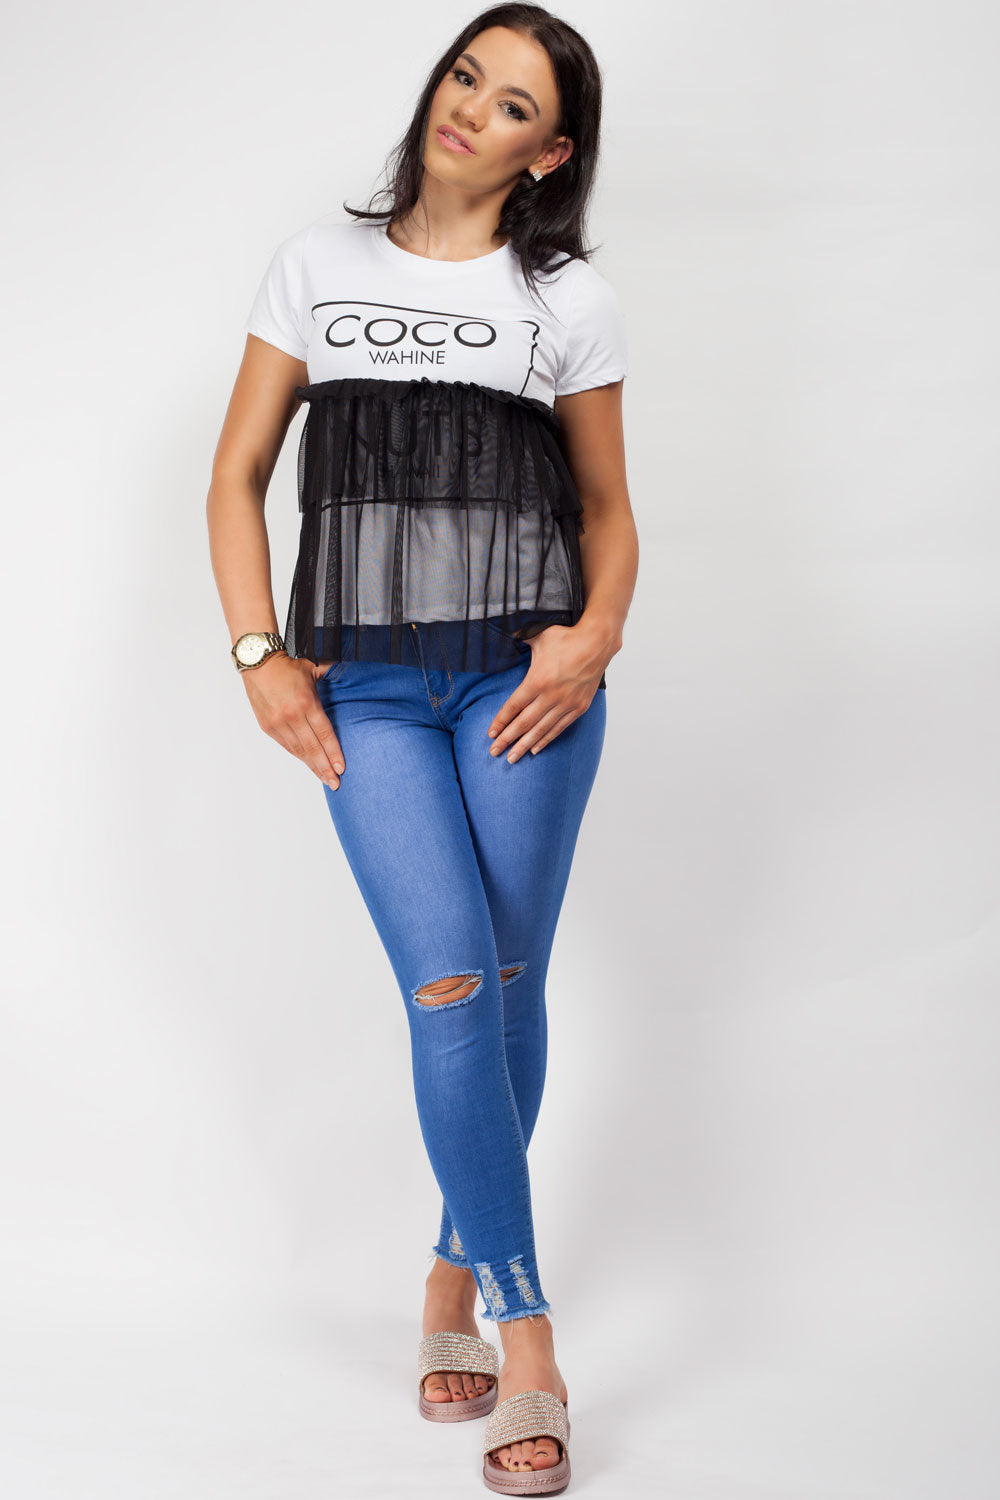 white coco slogan t shirt